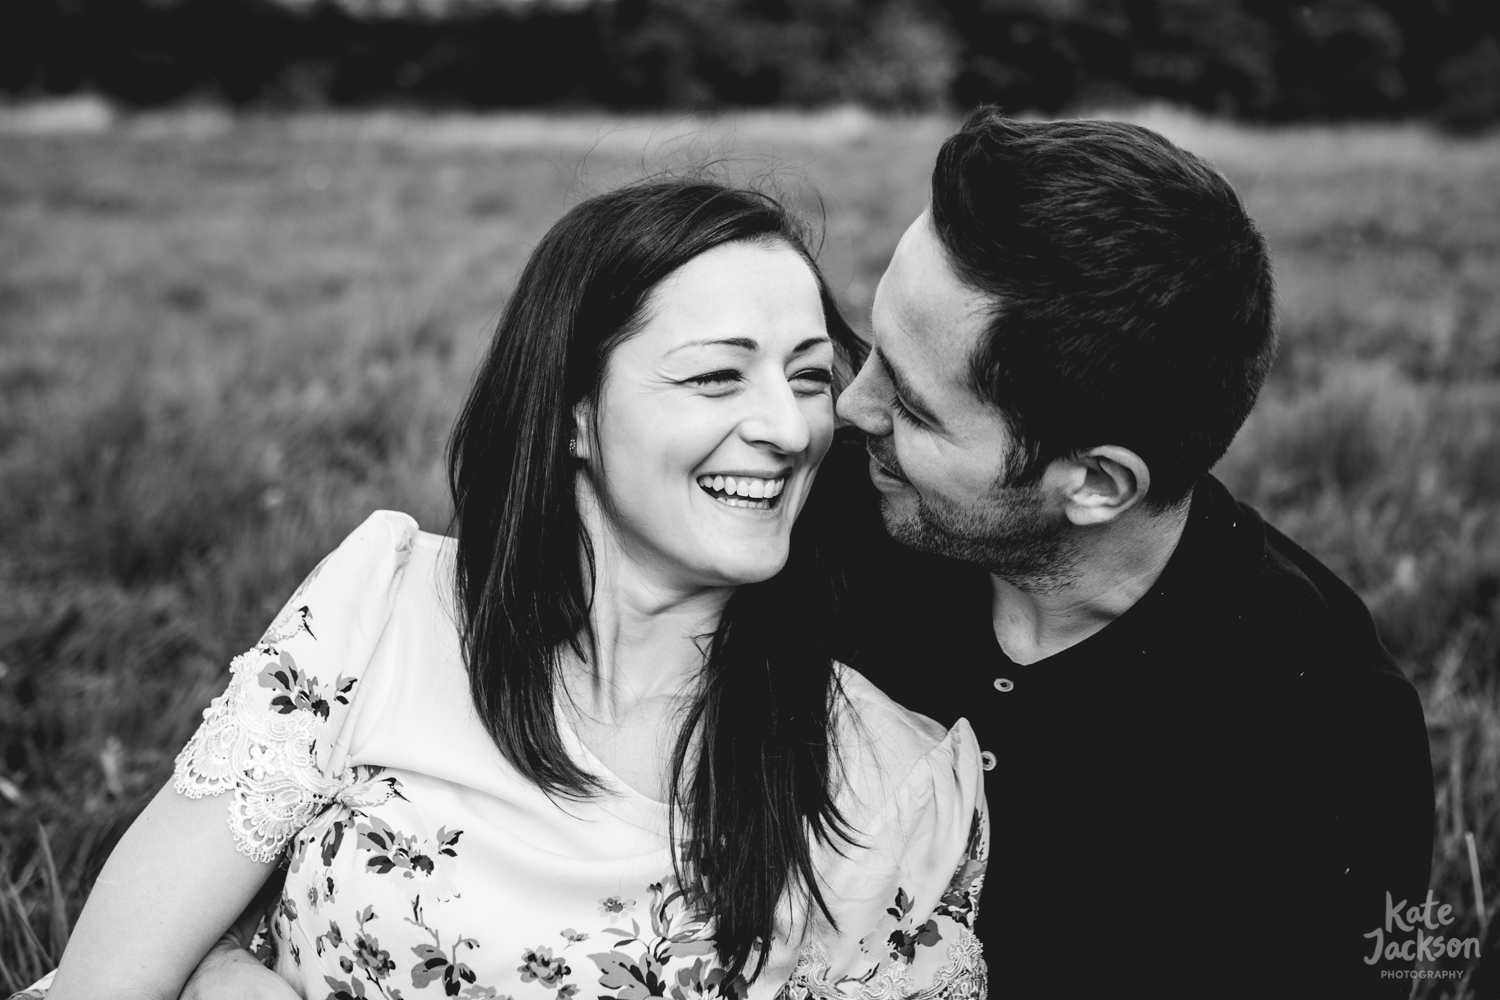 Happy & Fun Engagement Photos - Kate Jackson Wedding Photography